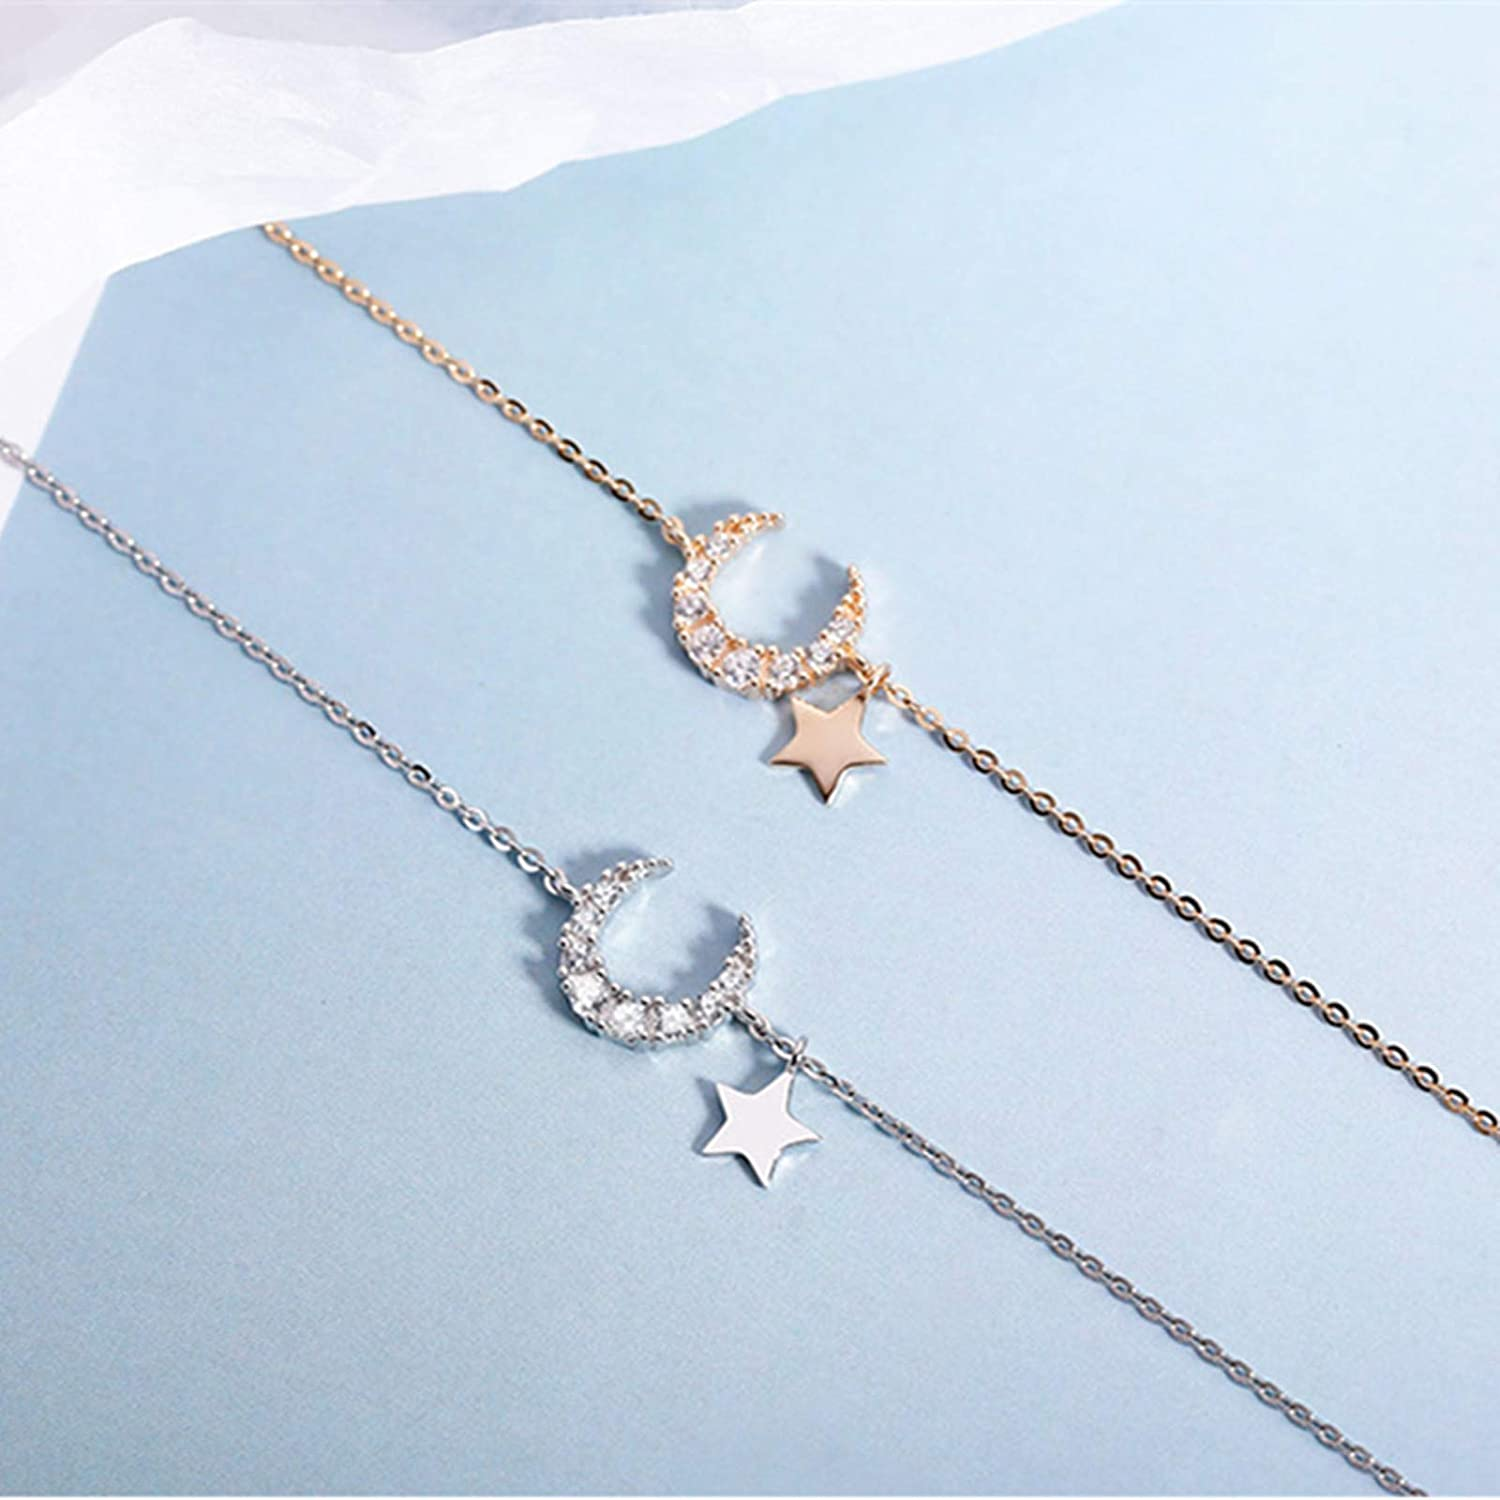 New Necklace for Women Fashion Sweet Crescent Moon and Star Pendant,Creative Planet Pendant Necklace Charming Women's Clavicle Chain Fashion Party Jewelry Titanium Steel Necklace